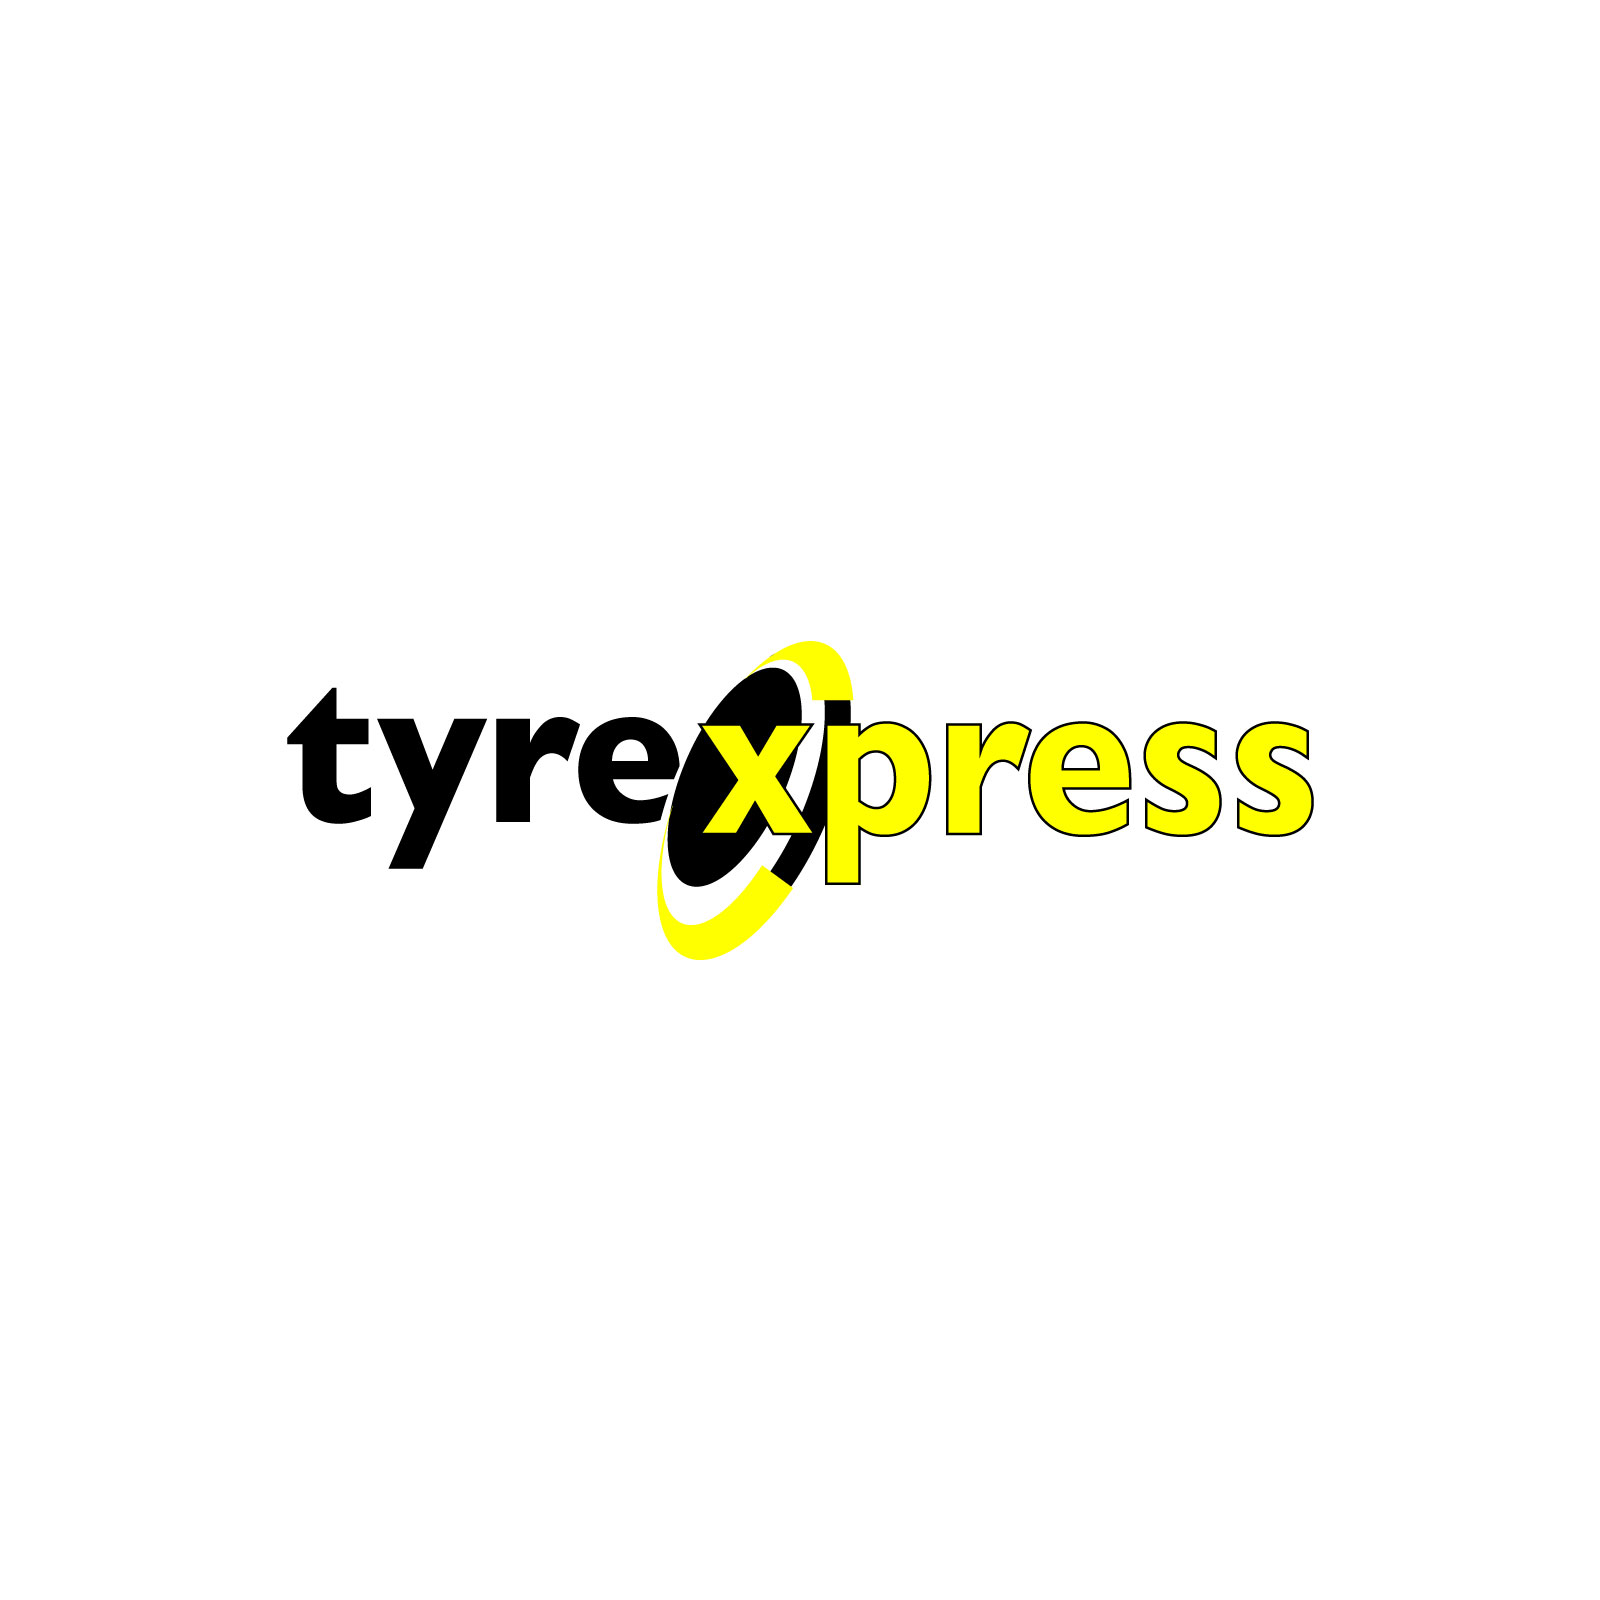 TyreXpress